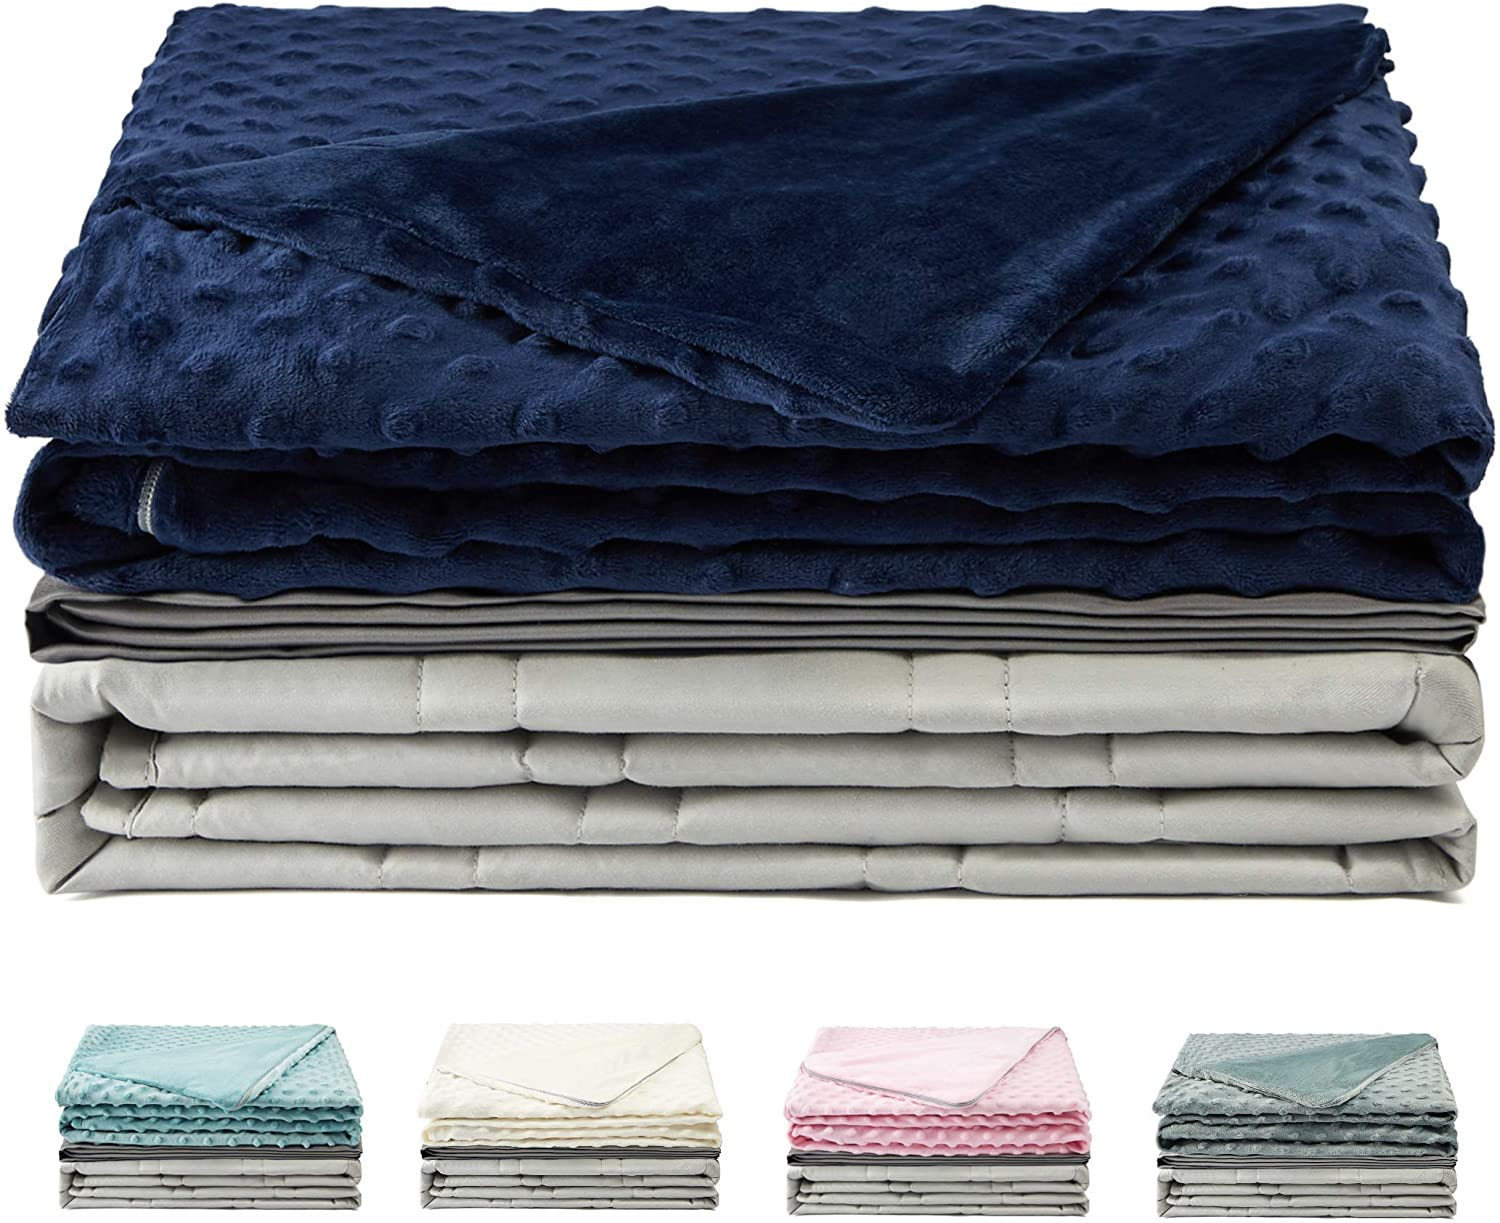 Haus Projekt Premium Weighted Blanket & Removable Cover (Blue) | Heavy Sensory Blanket With Premium Glass Beads | Relaxing Sleep Therapy for People With Anxiety, Insomnia or Stress